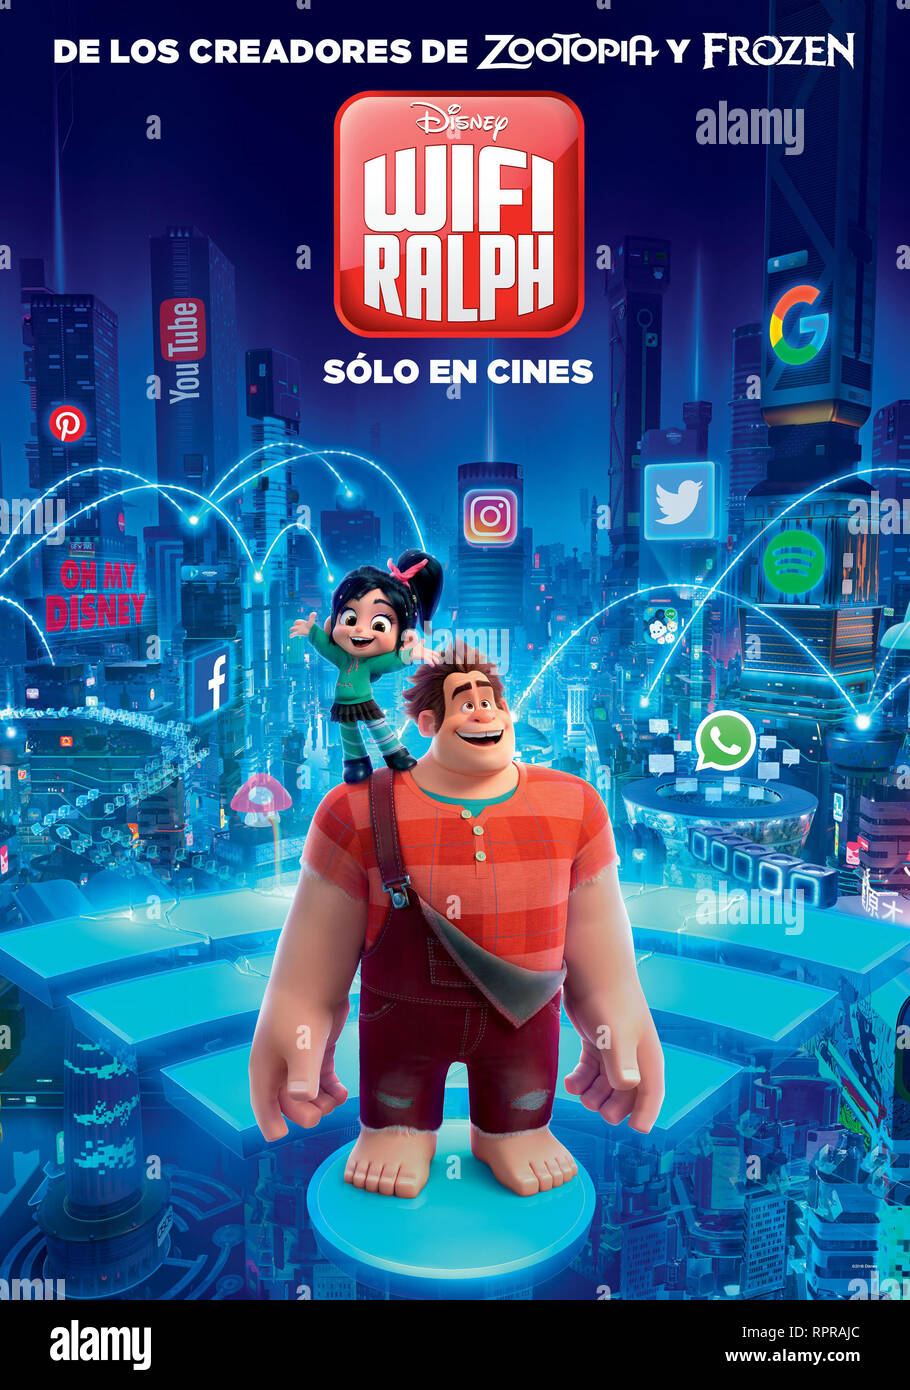 RALPH RALPH 2.0 CASSE LE 2019 INTERNET riche de Moore et Phil Johnston teaser argentin dessin anime ; animation ; cartoon Prod DB © Walt Disney animati Photo Stock